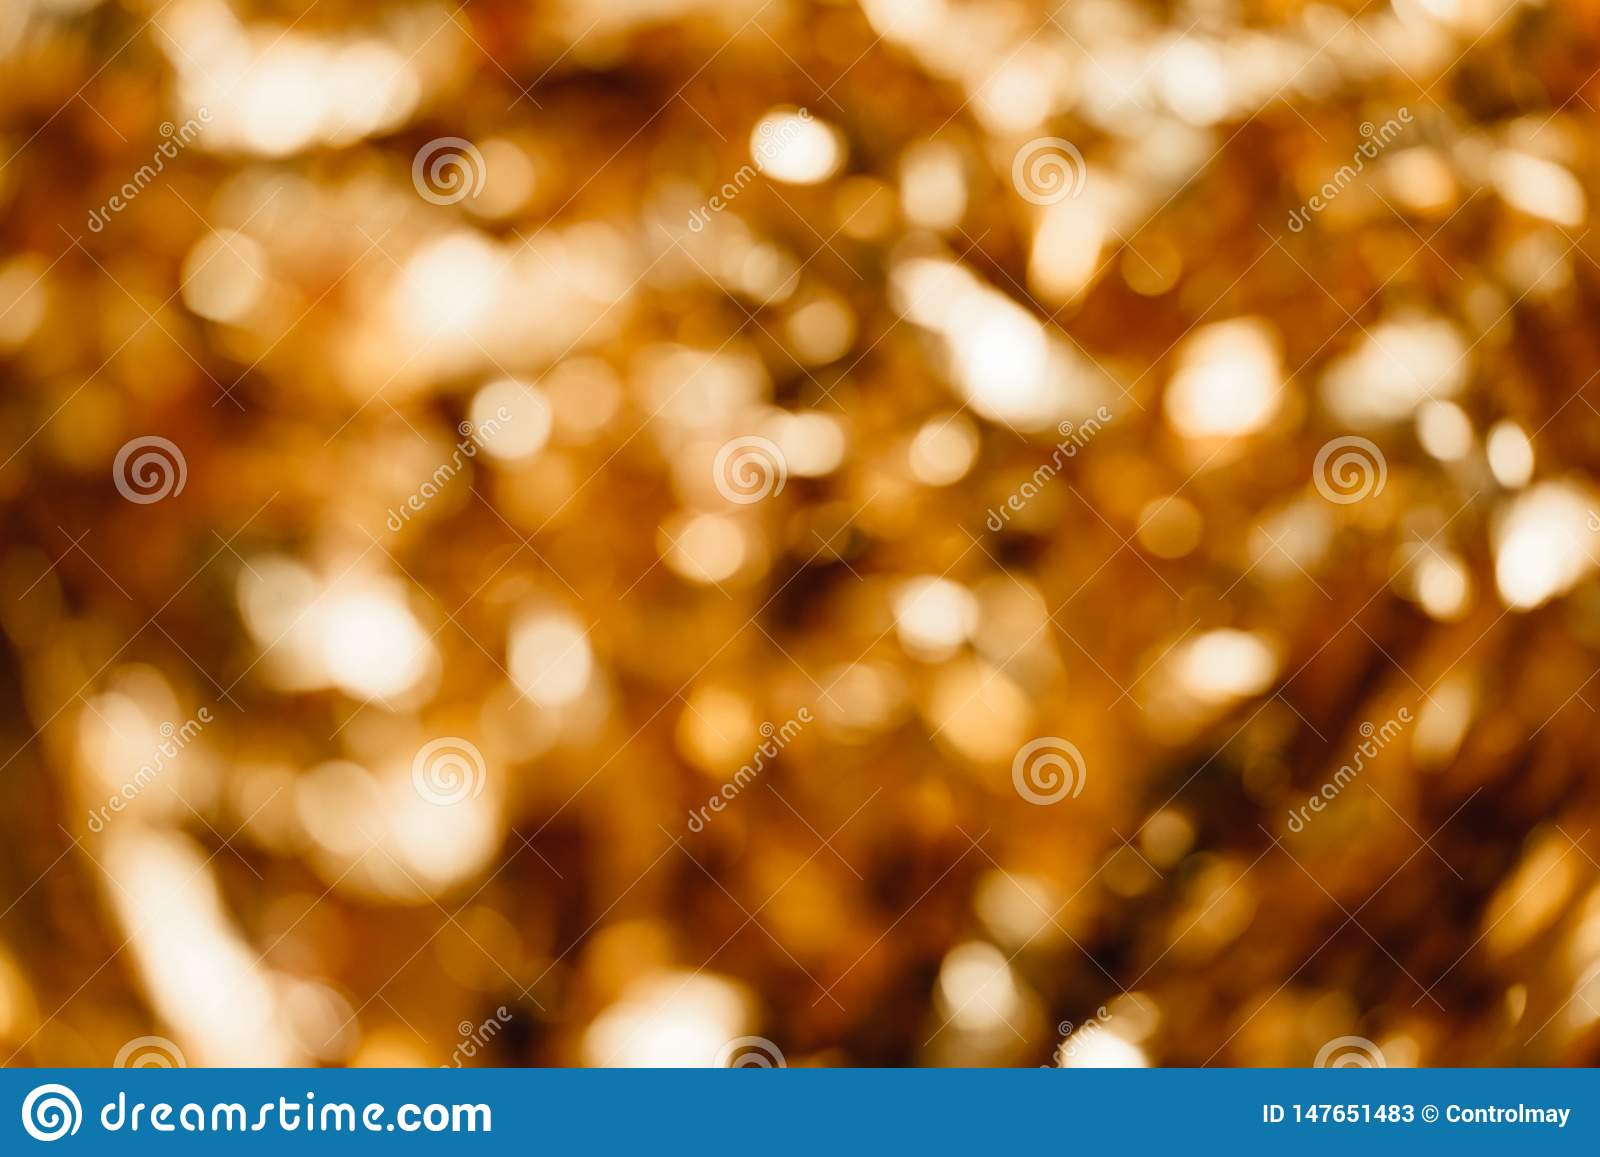 Gold background out of focus.